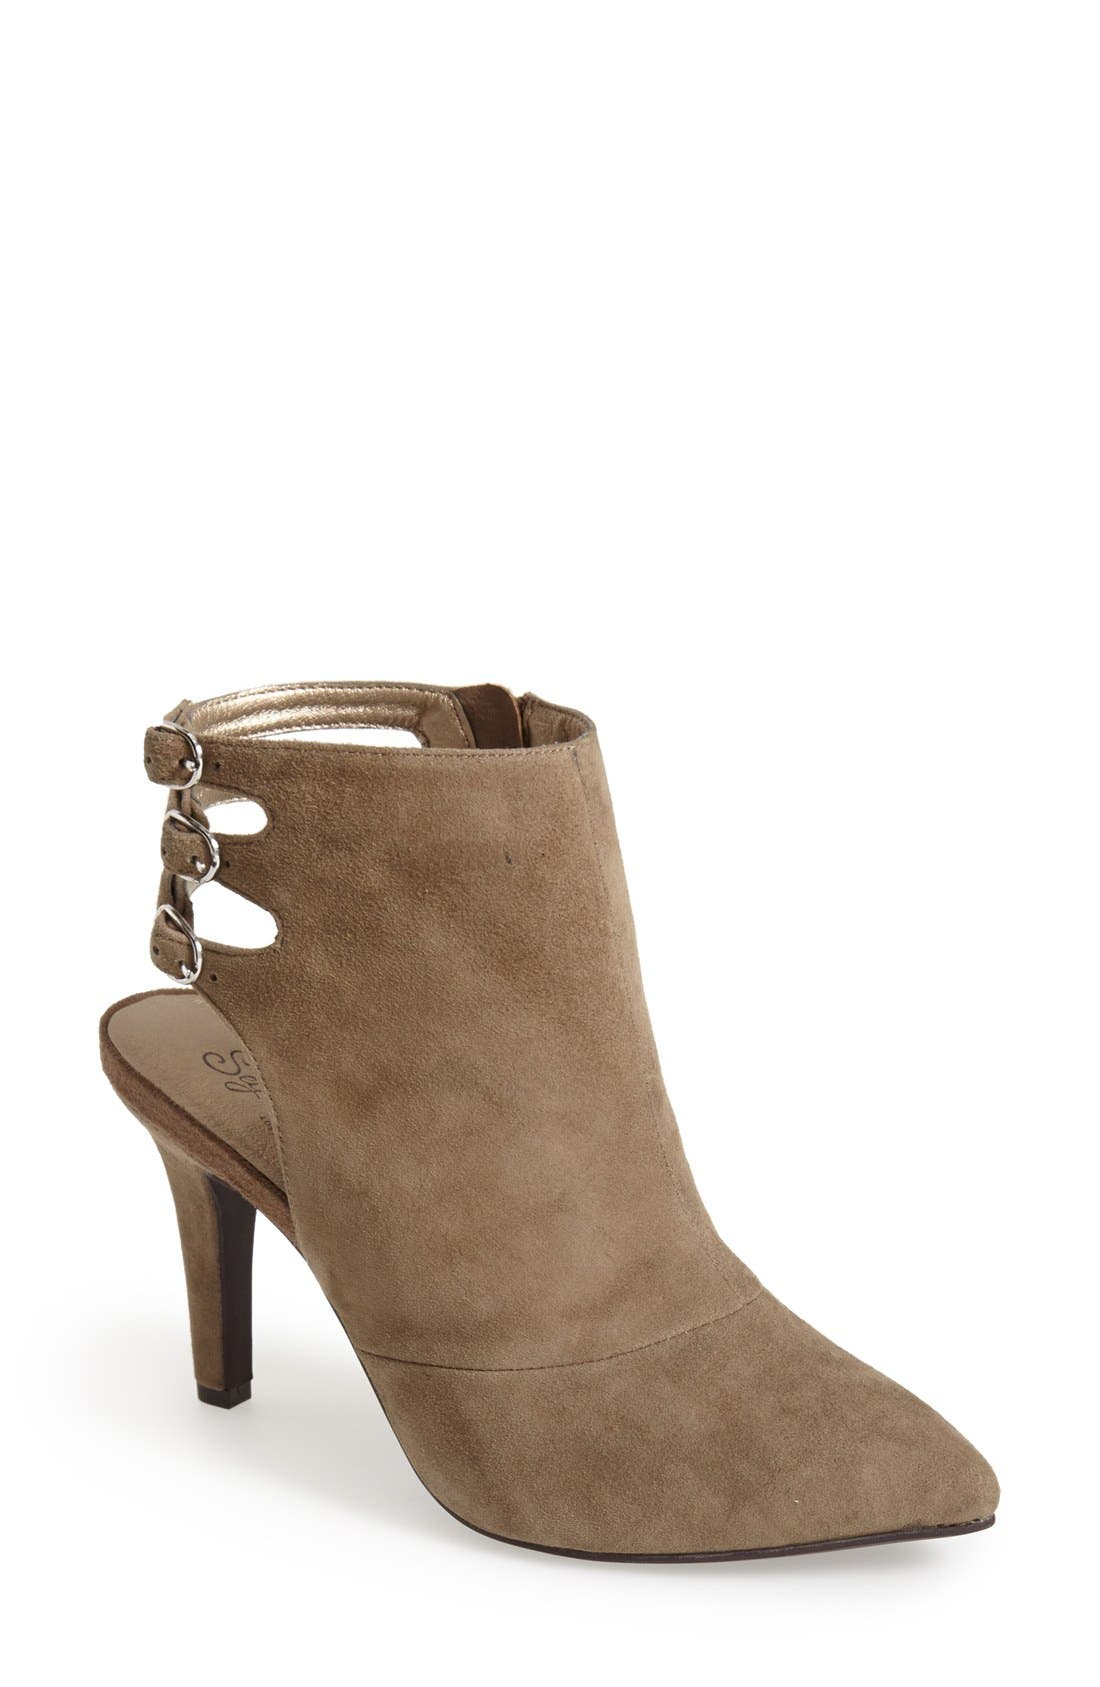 Main Image - Seychelles 'Expert' Pointy Toe Suede Bootie (Women)